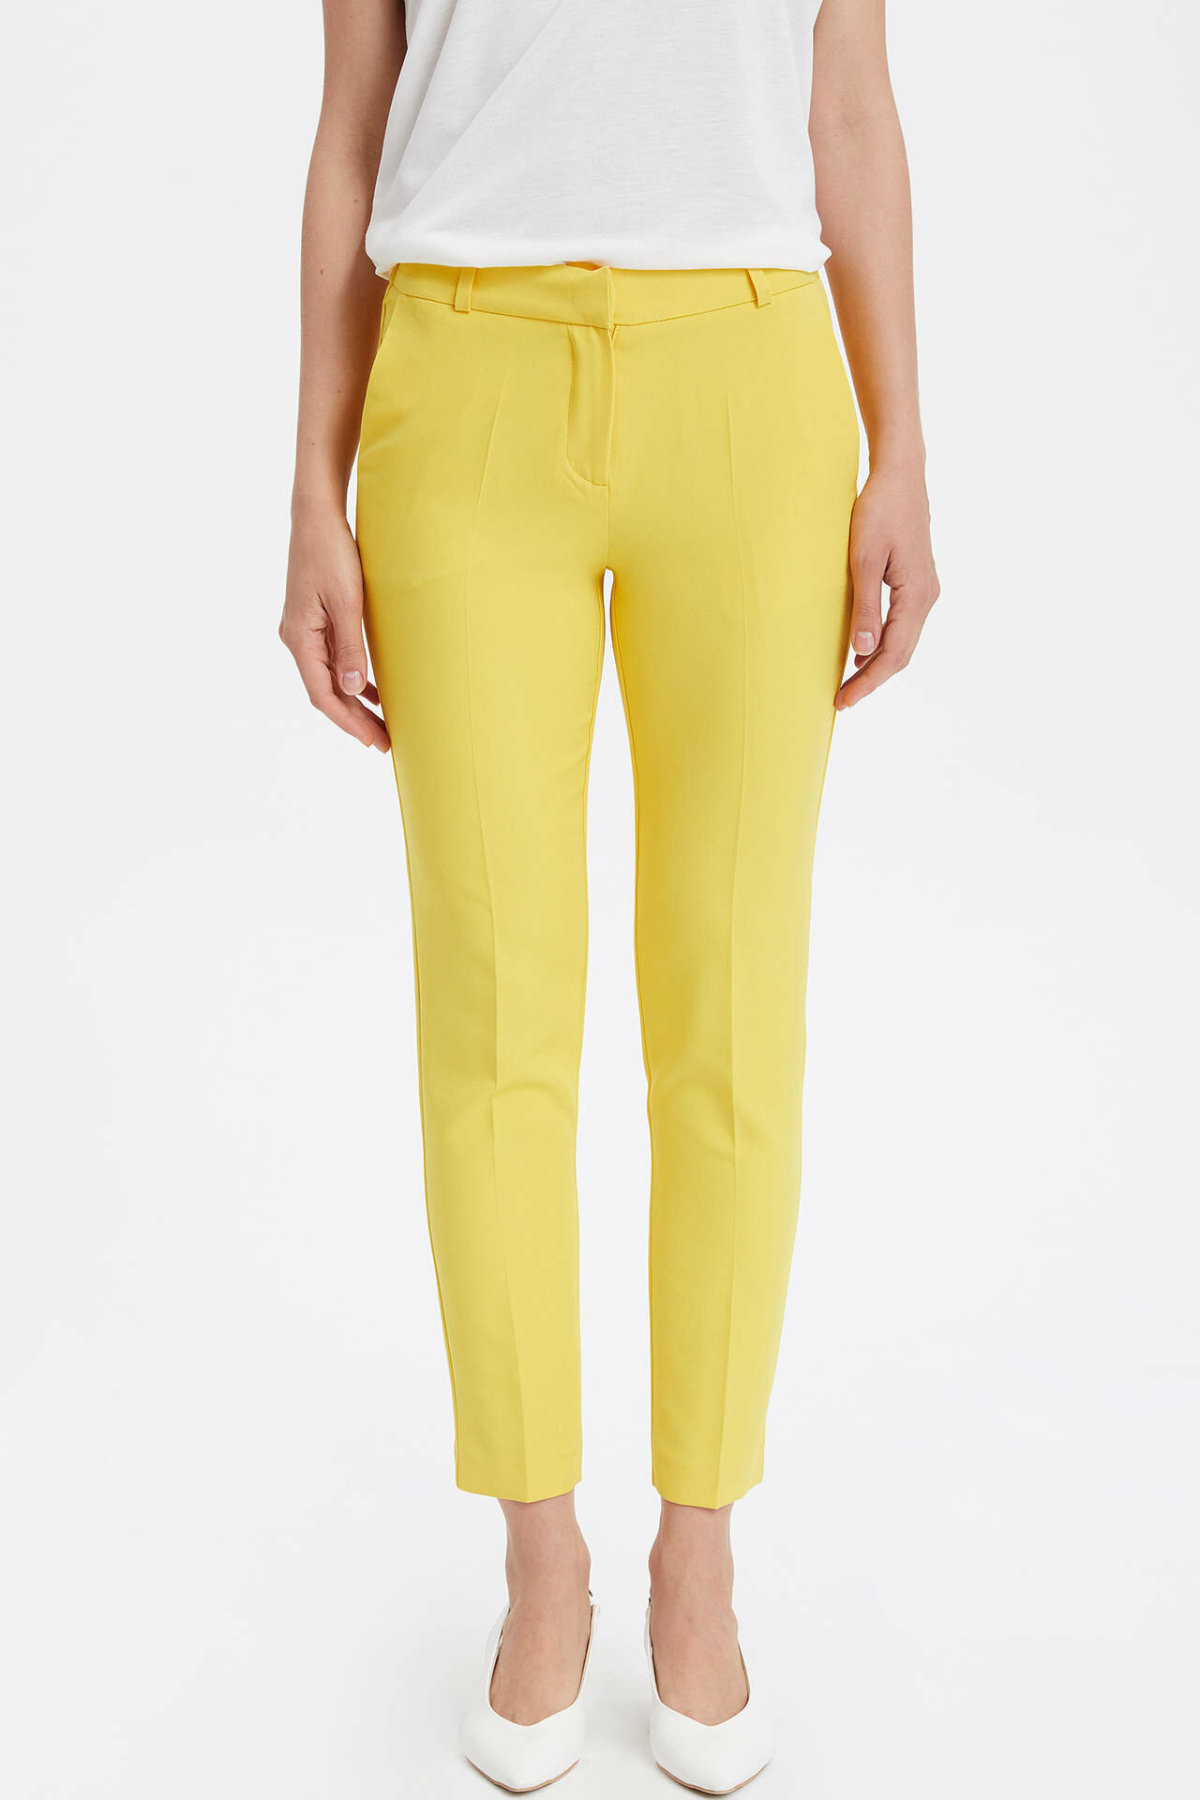 DeFacto New Woman Fashion Trousers Female Casual Crop Pants Ladies Comfort Simple Pant High Quality Yellow - L4583AZ19SM